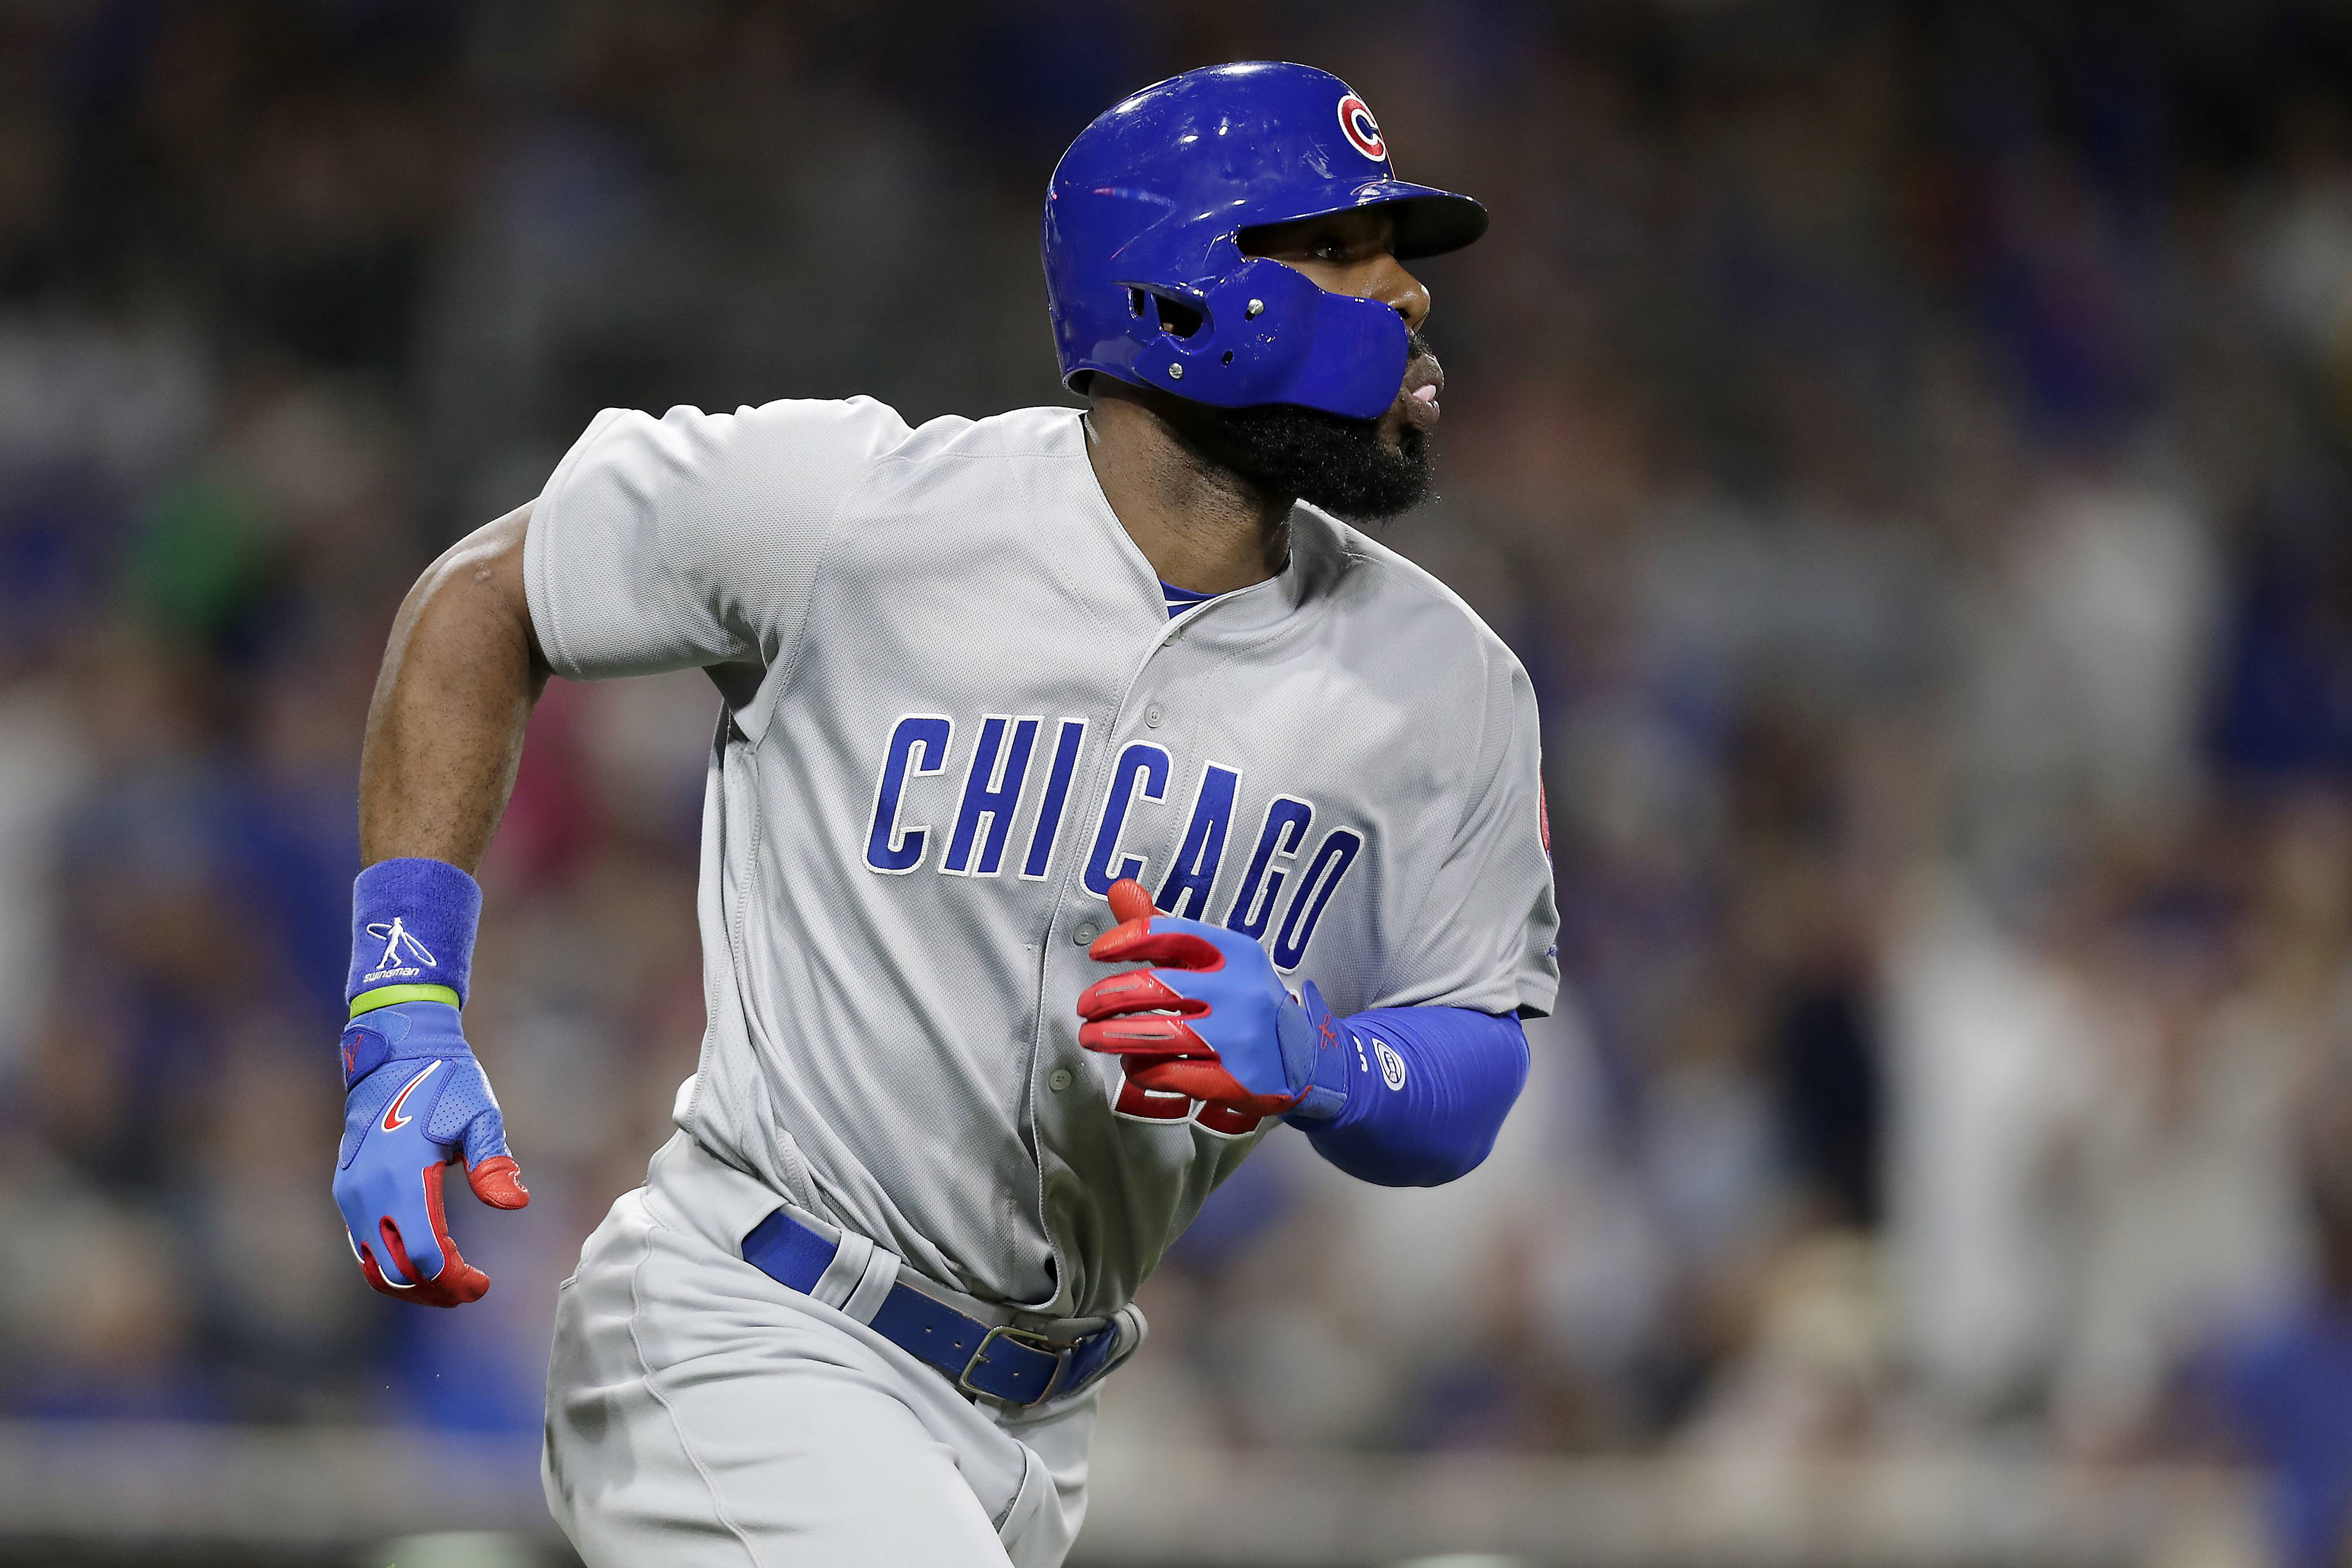 Chicago Cubs right fielder Jason Heyward hit a 2-run home run during the fifth inning Monday night against the San Diego Padres.